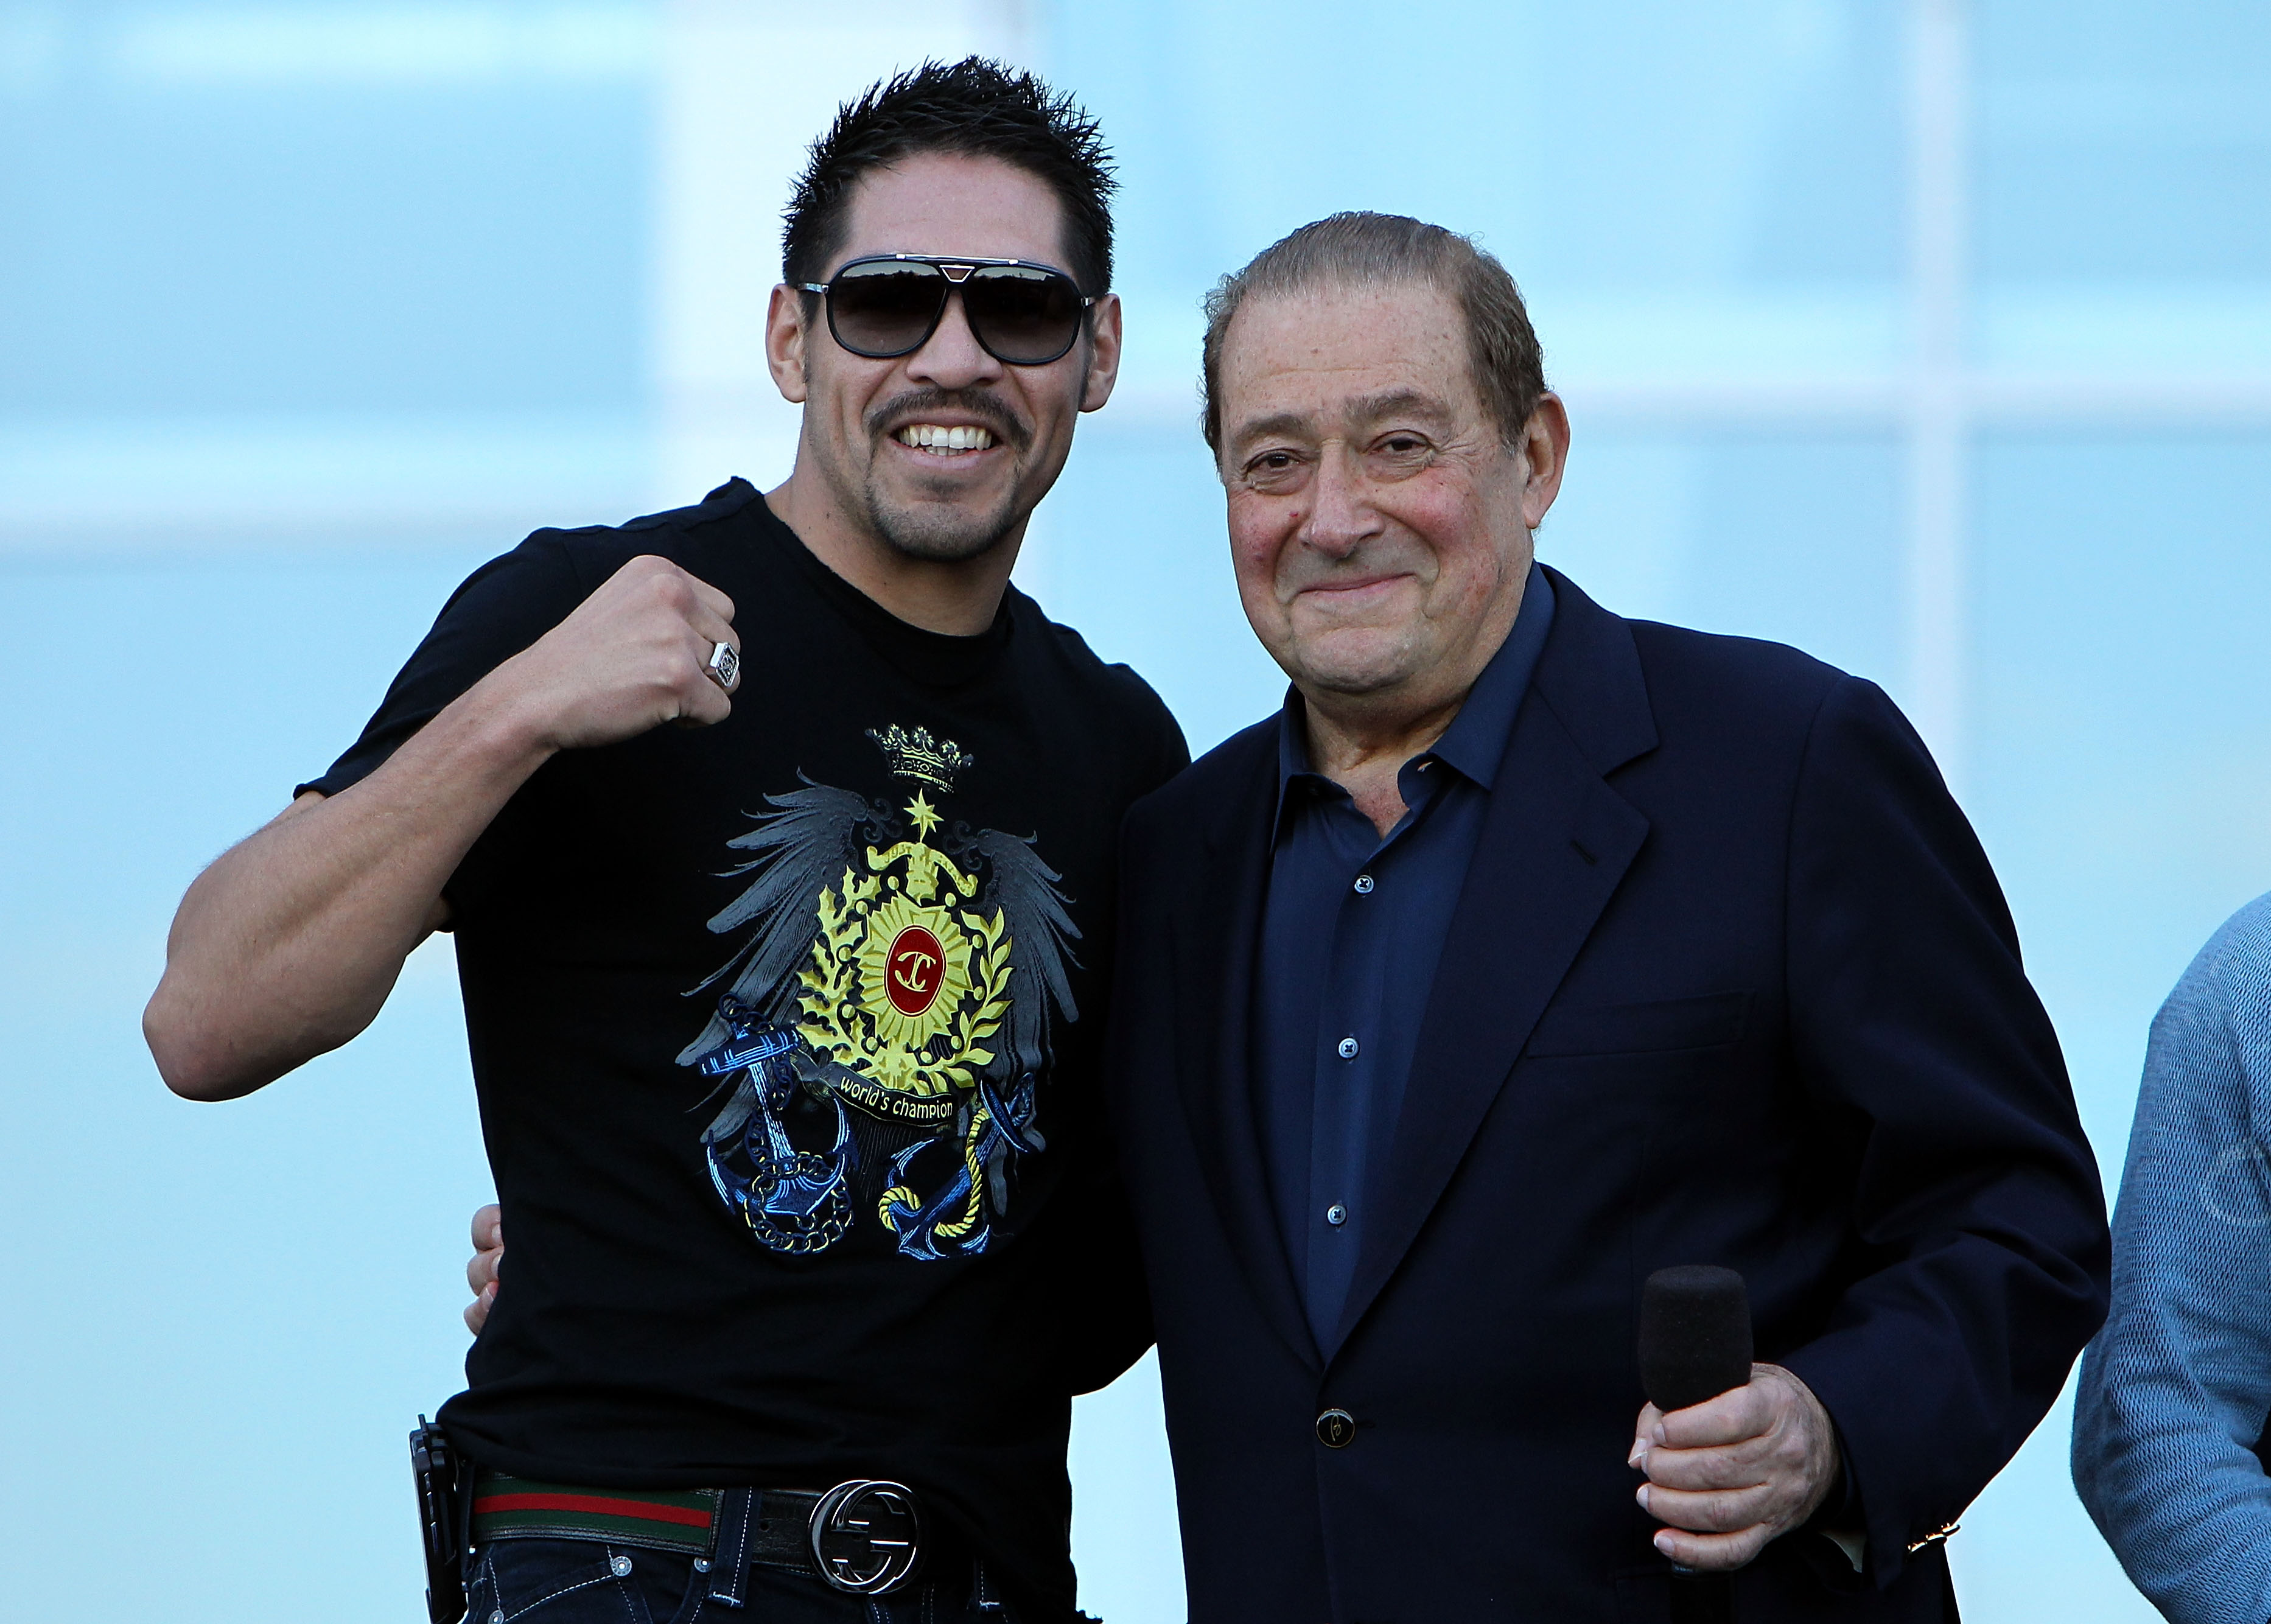 ARLINGTON, TX - MARCH 12:  Boxer Antonio Margarito of Mexico and promoter Bob Arum pose in front of Cowboys Stadium before the weigh-in for the WBO welterweight title fight between Manny Pacquiao of the Philippines and Joshua Clottey of Ghana on March 12,